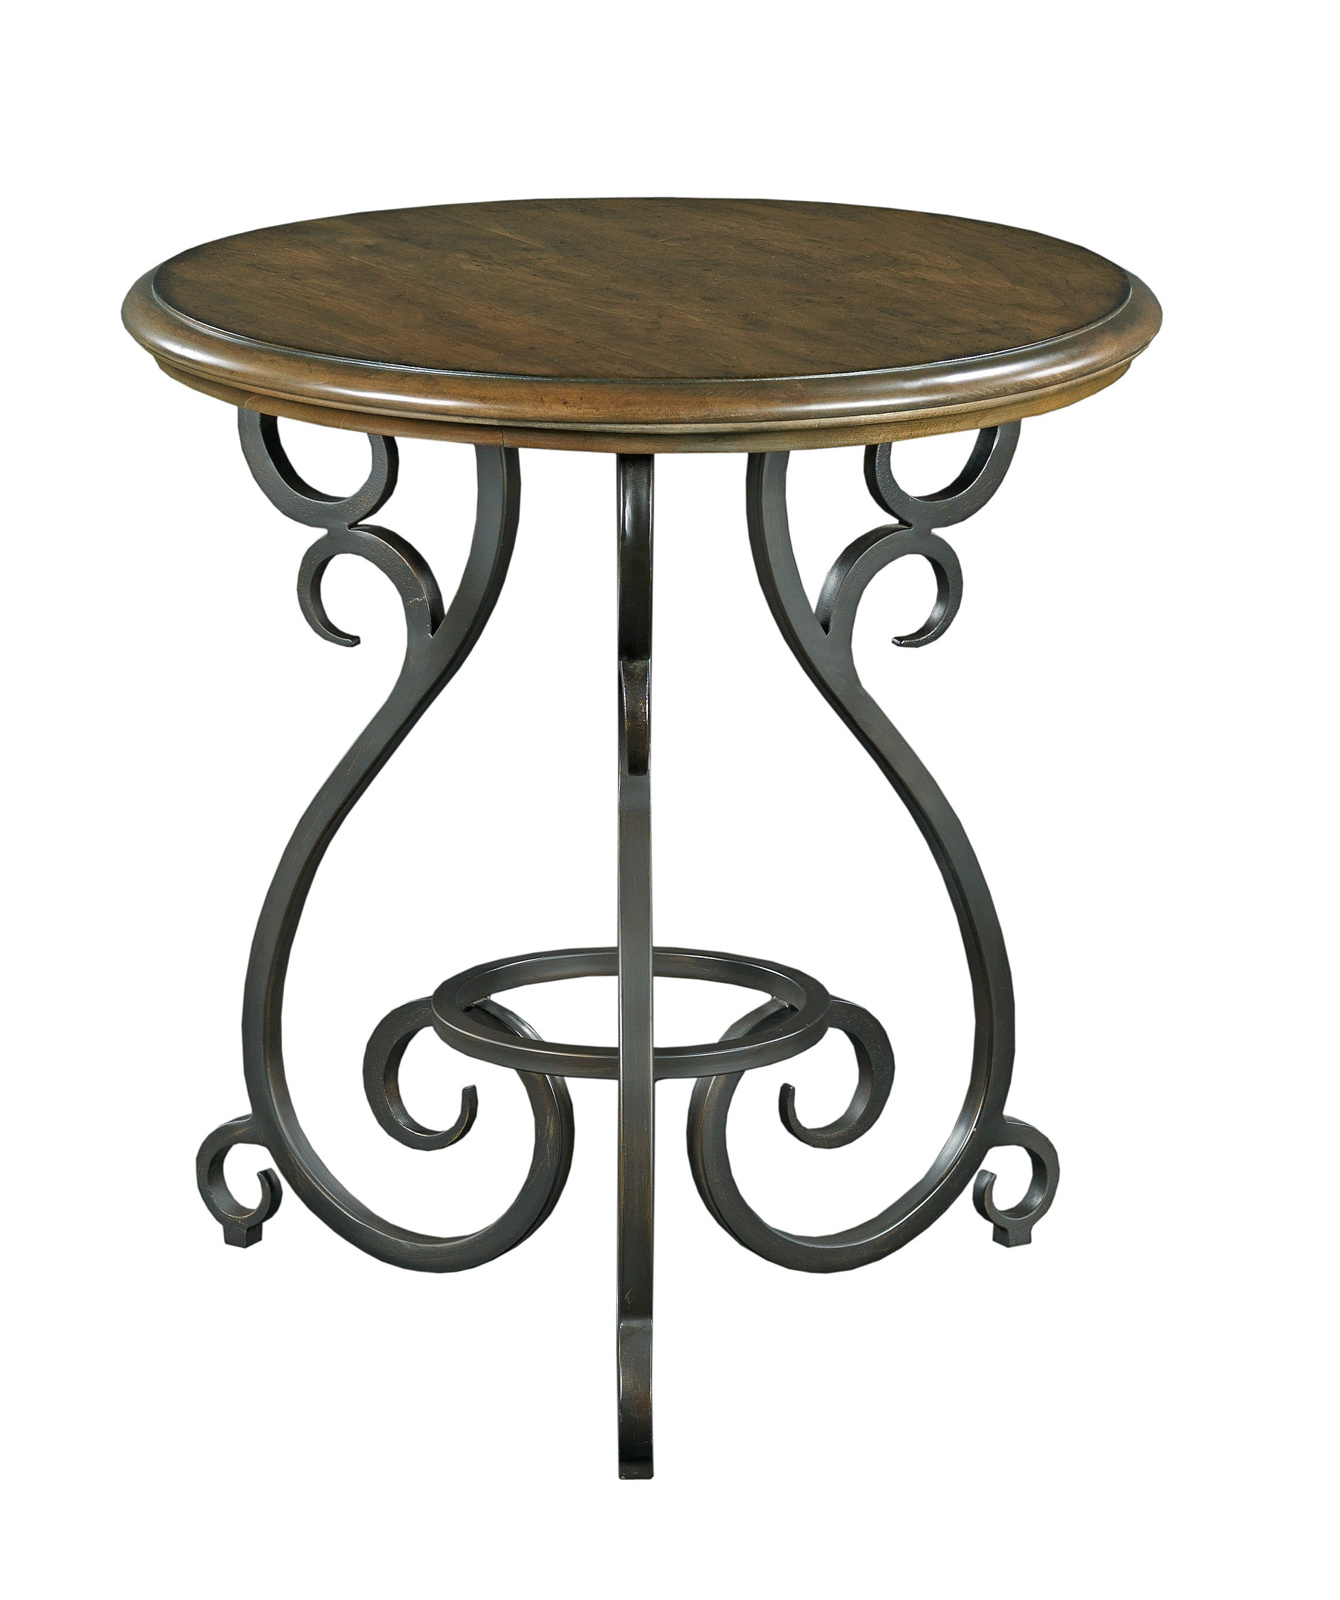 kincaid portolone accent table rich truffle silo groups best home decor items outdoor umbrella base weights tablecloth for oblong metal and glass nightstand ethan allen furniture